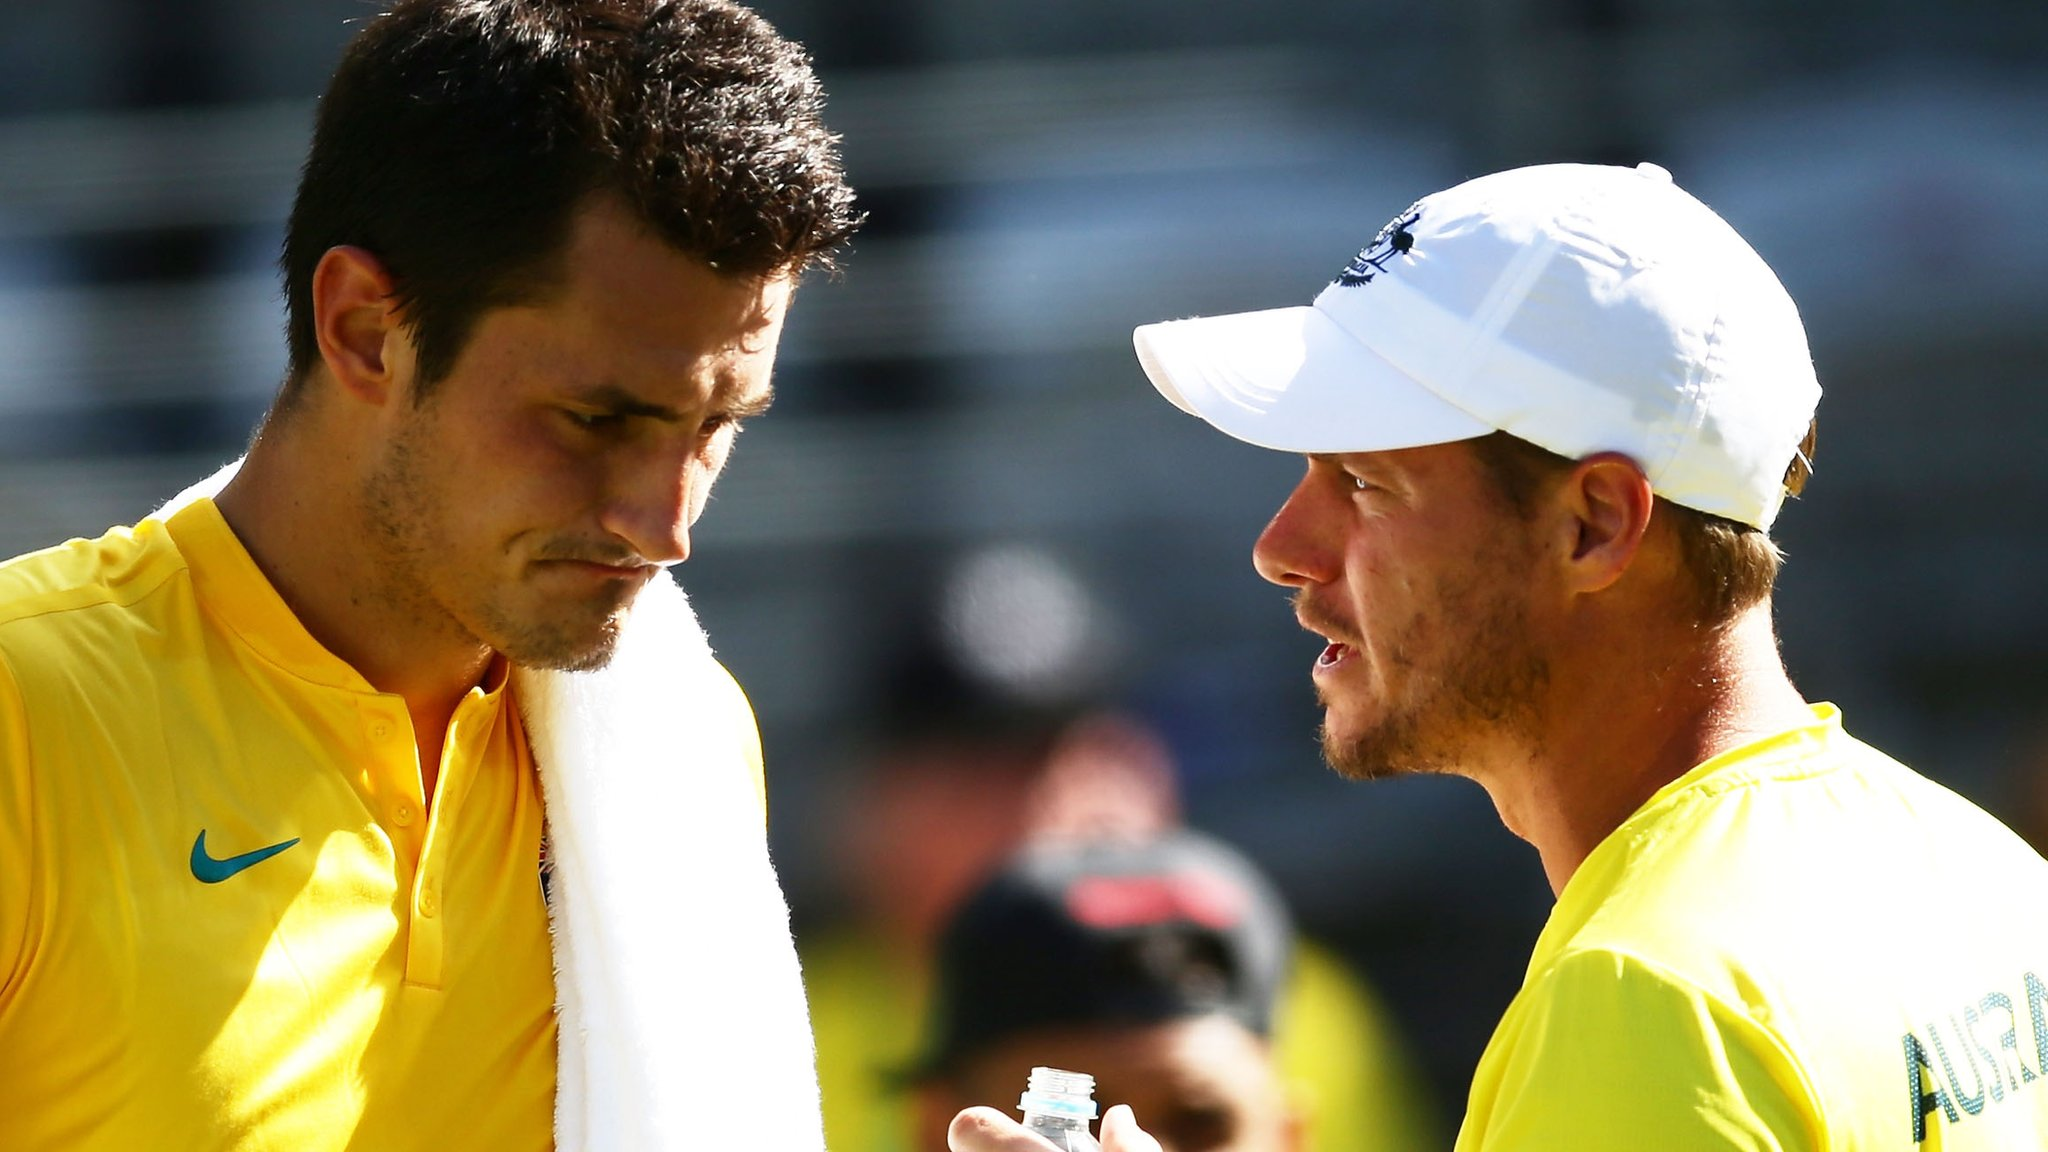 Tomic calls Hewitt 'liar' over threat and 'blackmail' claims